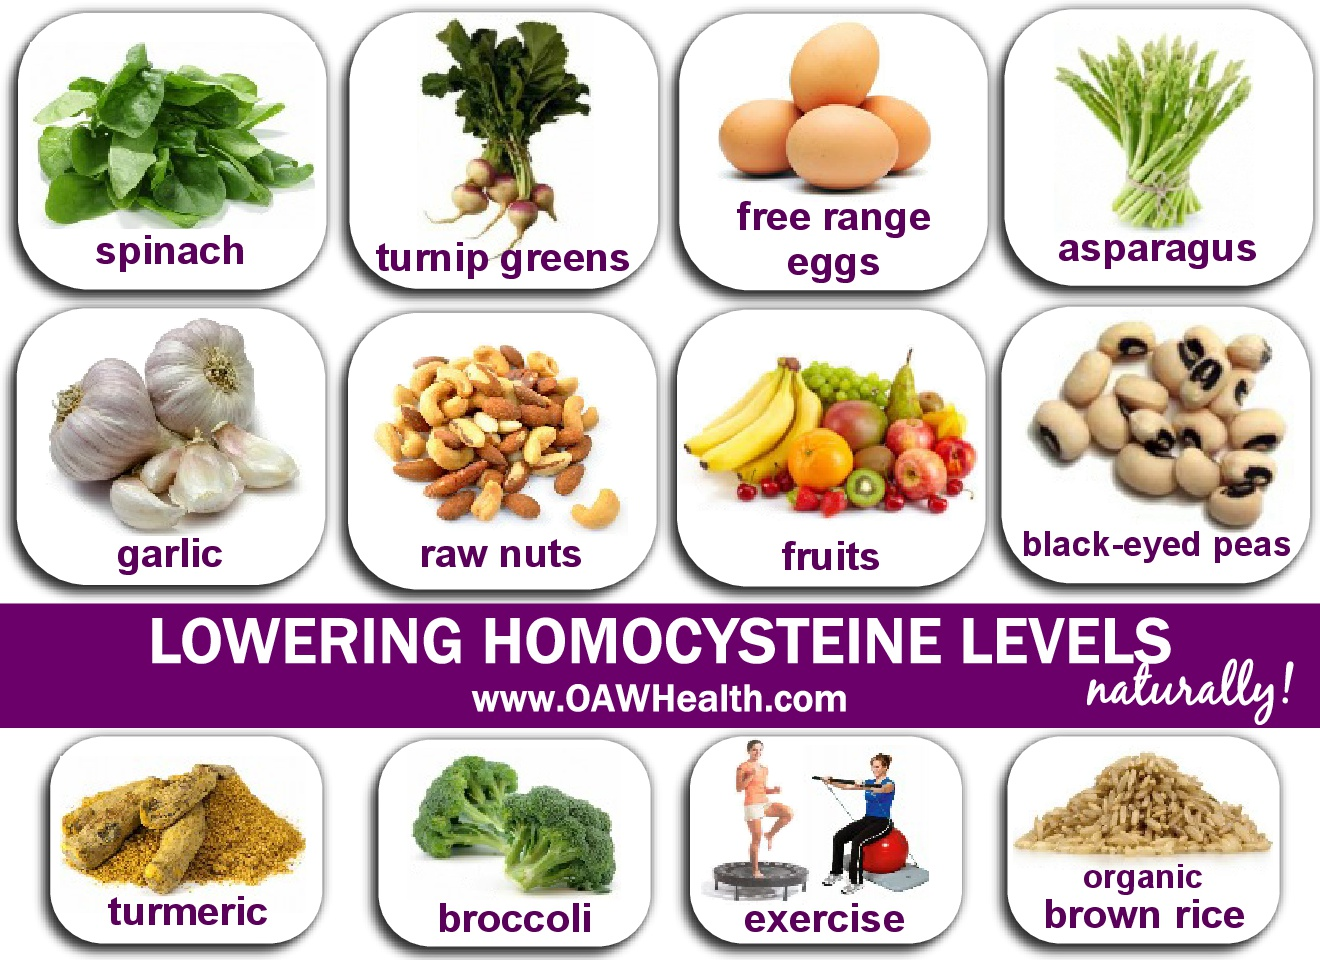 Lowering Homocysteine Levels Naturally